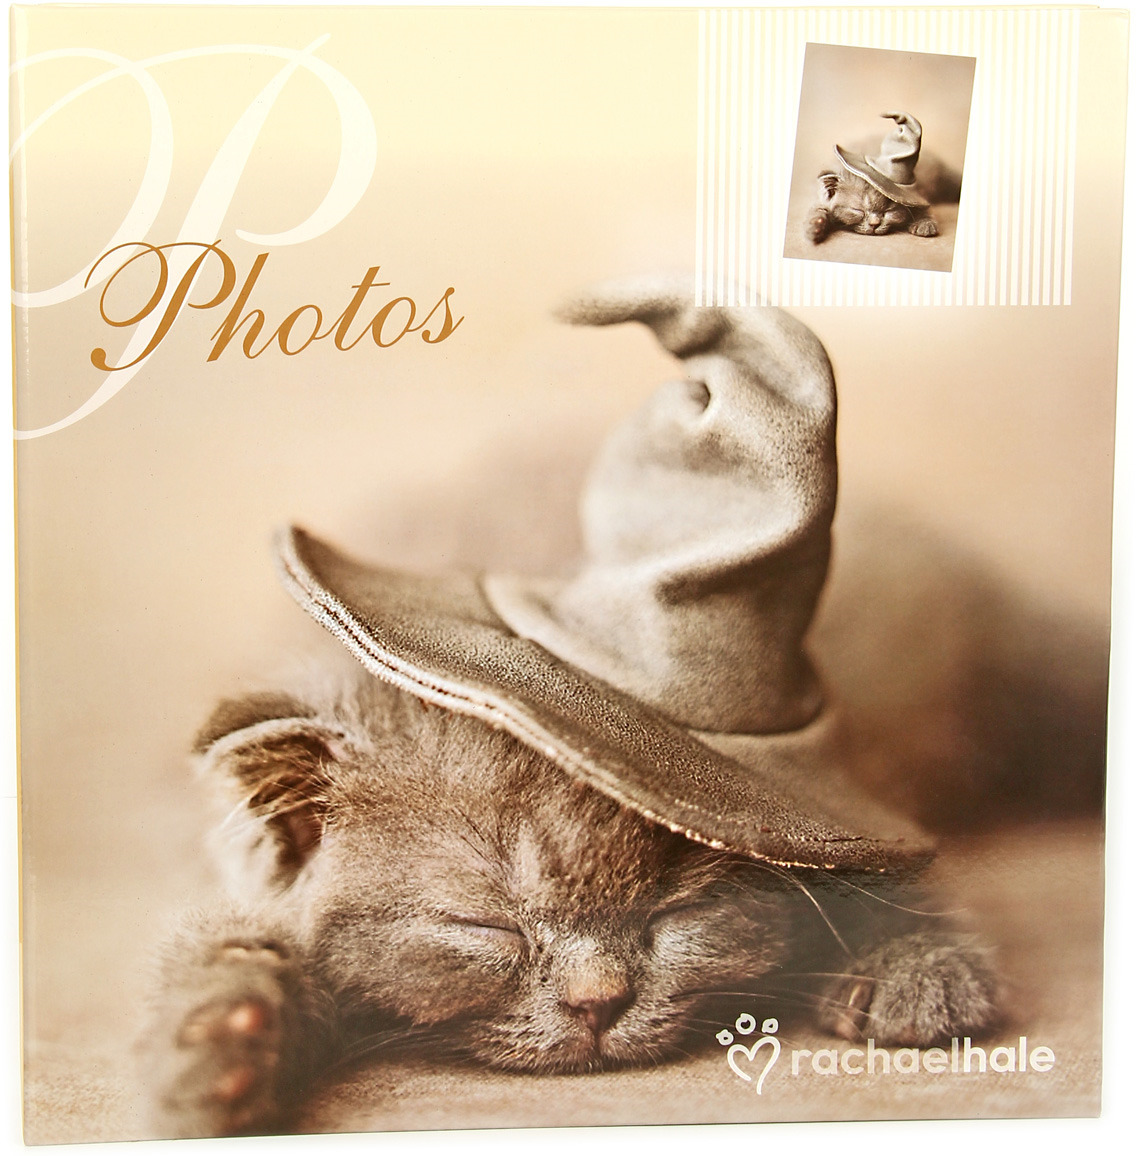 Фотоальбом Pioneer Lovely Kittens, 57788 AV46500 3-O фотоальбомы и рамки veld co фотоальбом walt disney друзья животные 200 фото 10х15 см